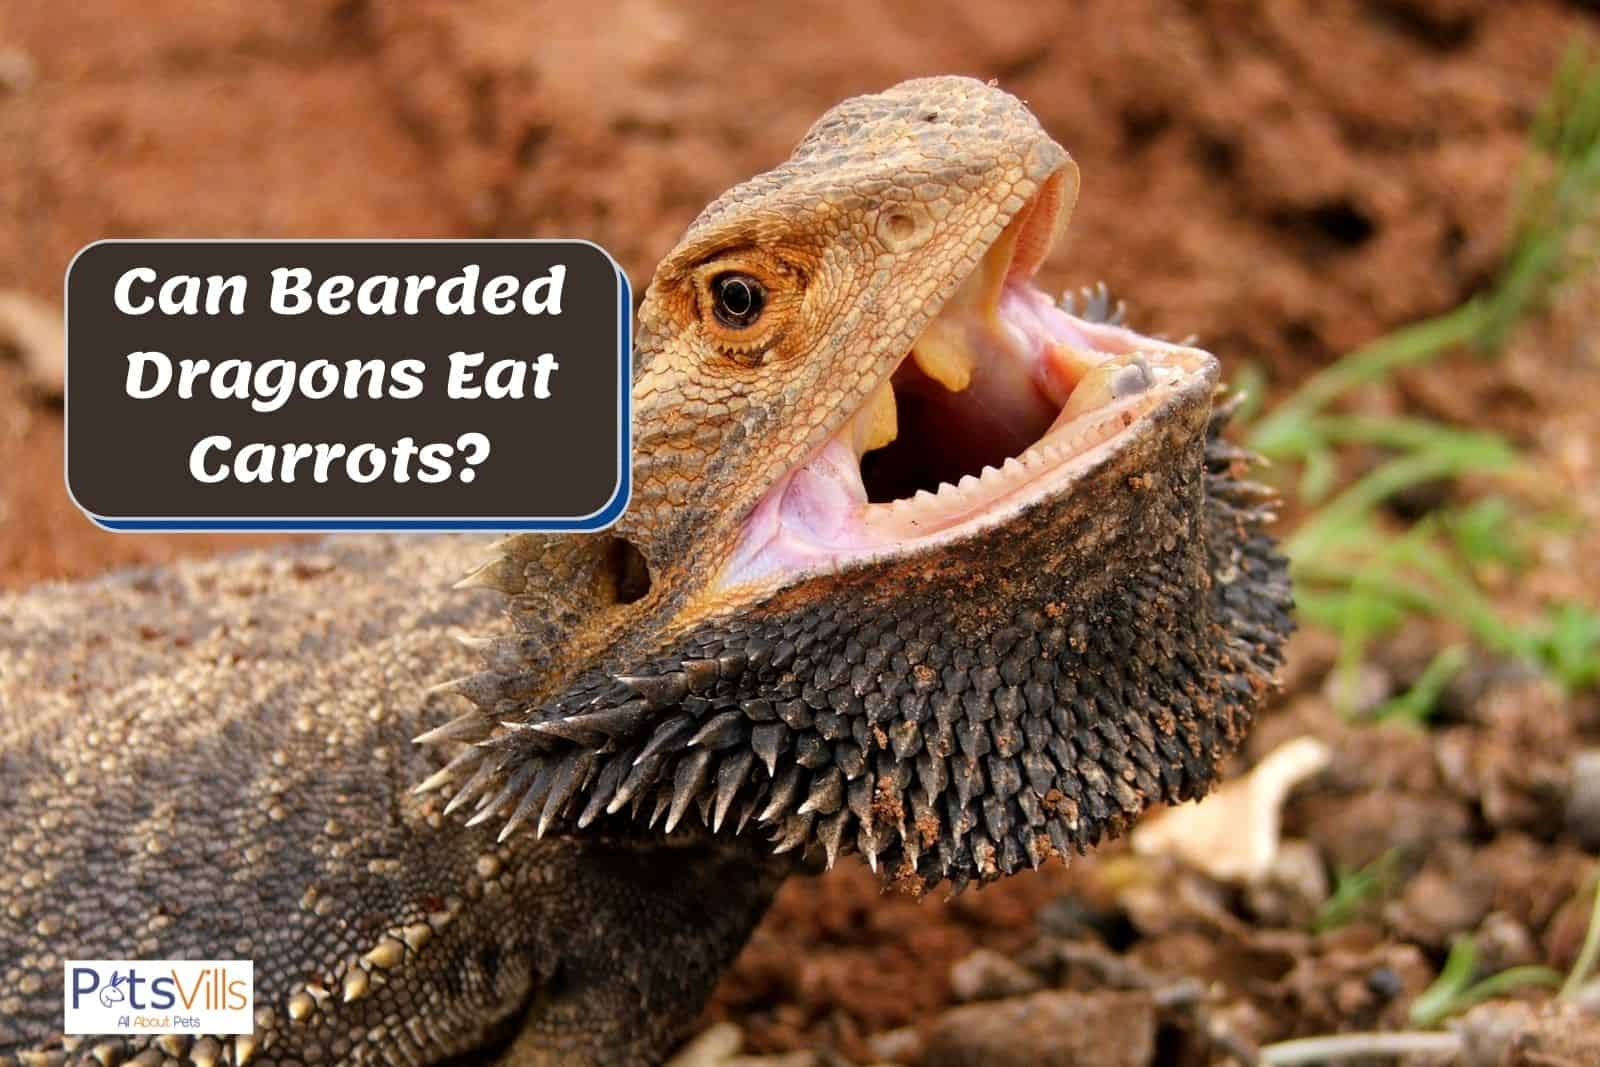 bearded dragon with a large open mouth